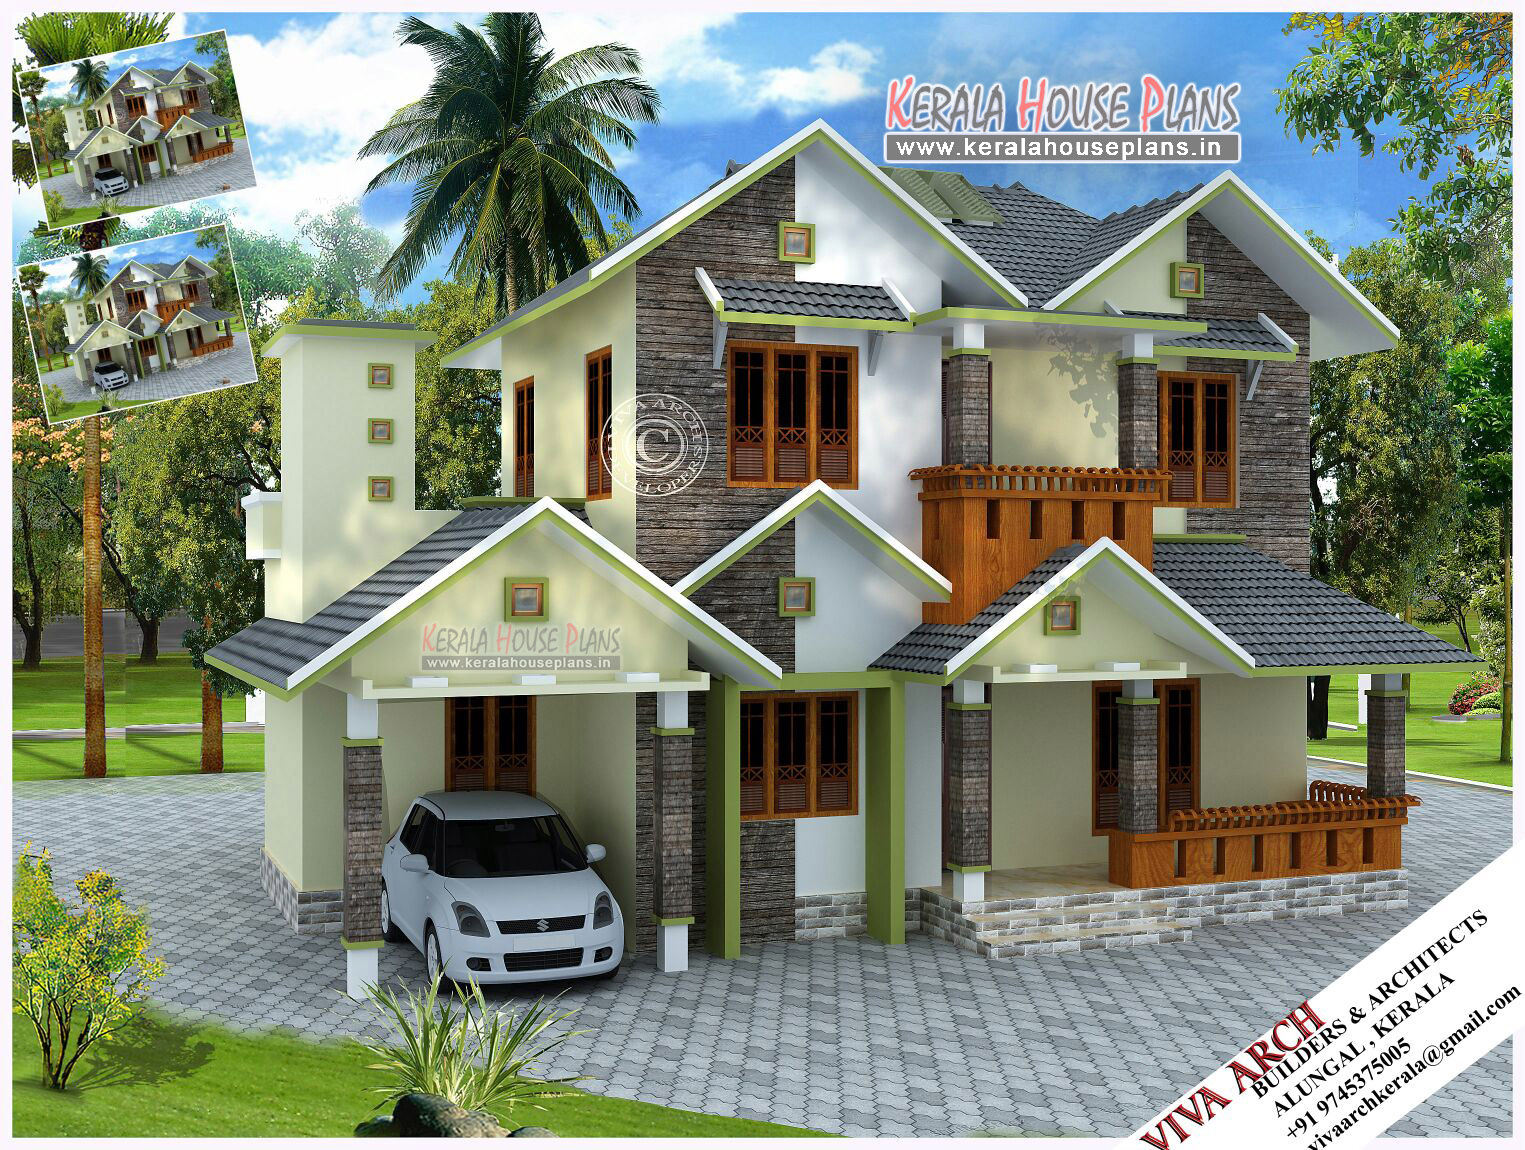 Kerala house plans and designs for Kerala house models and plans